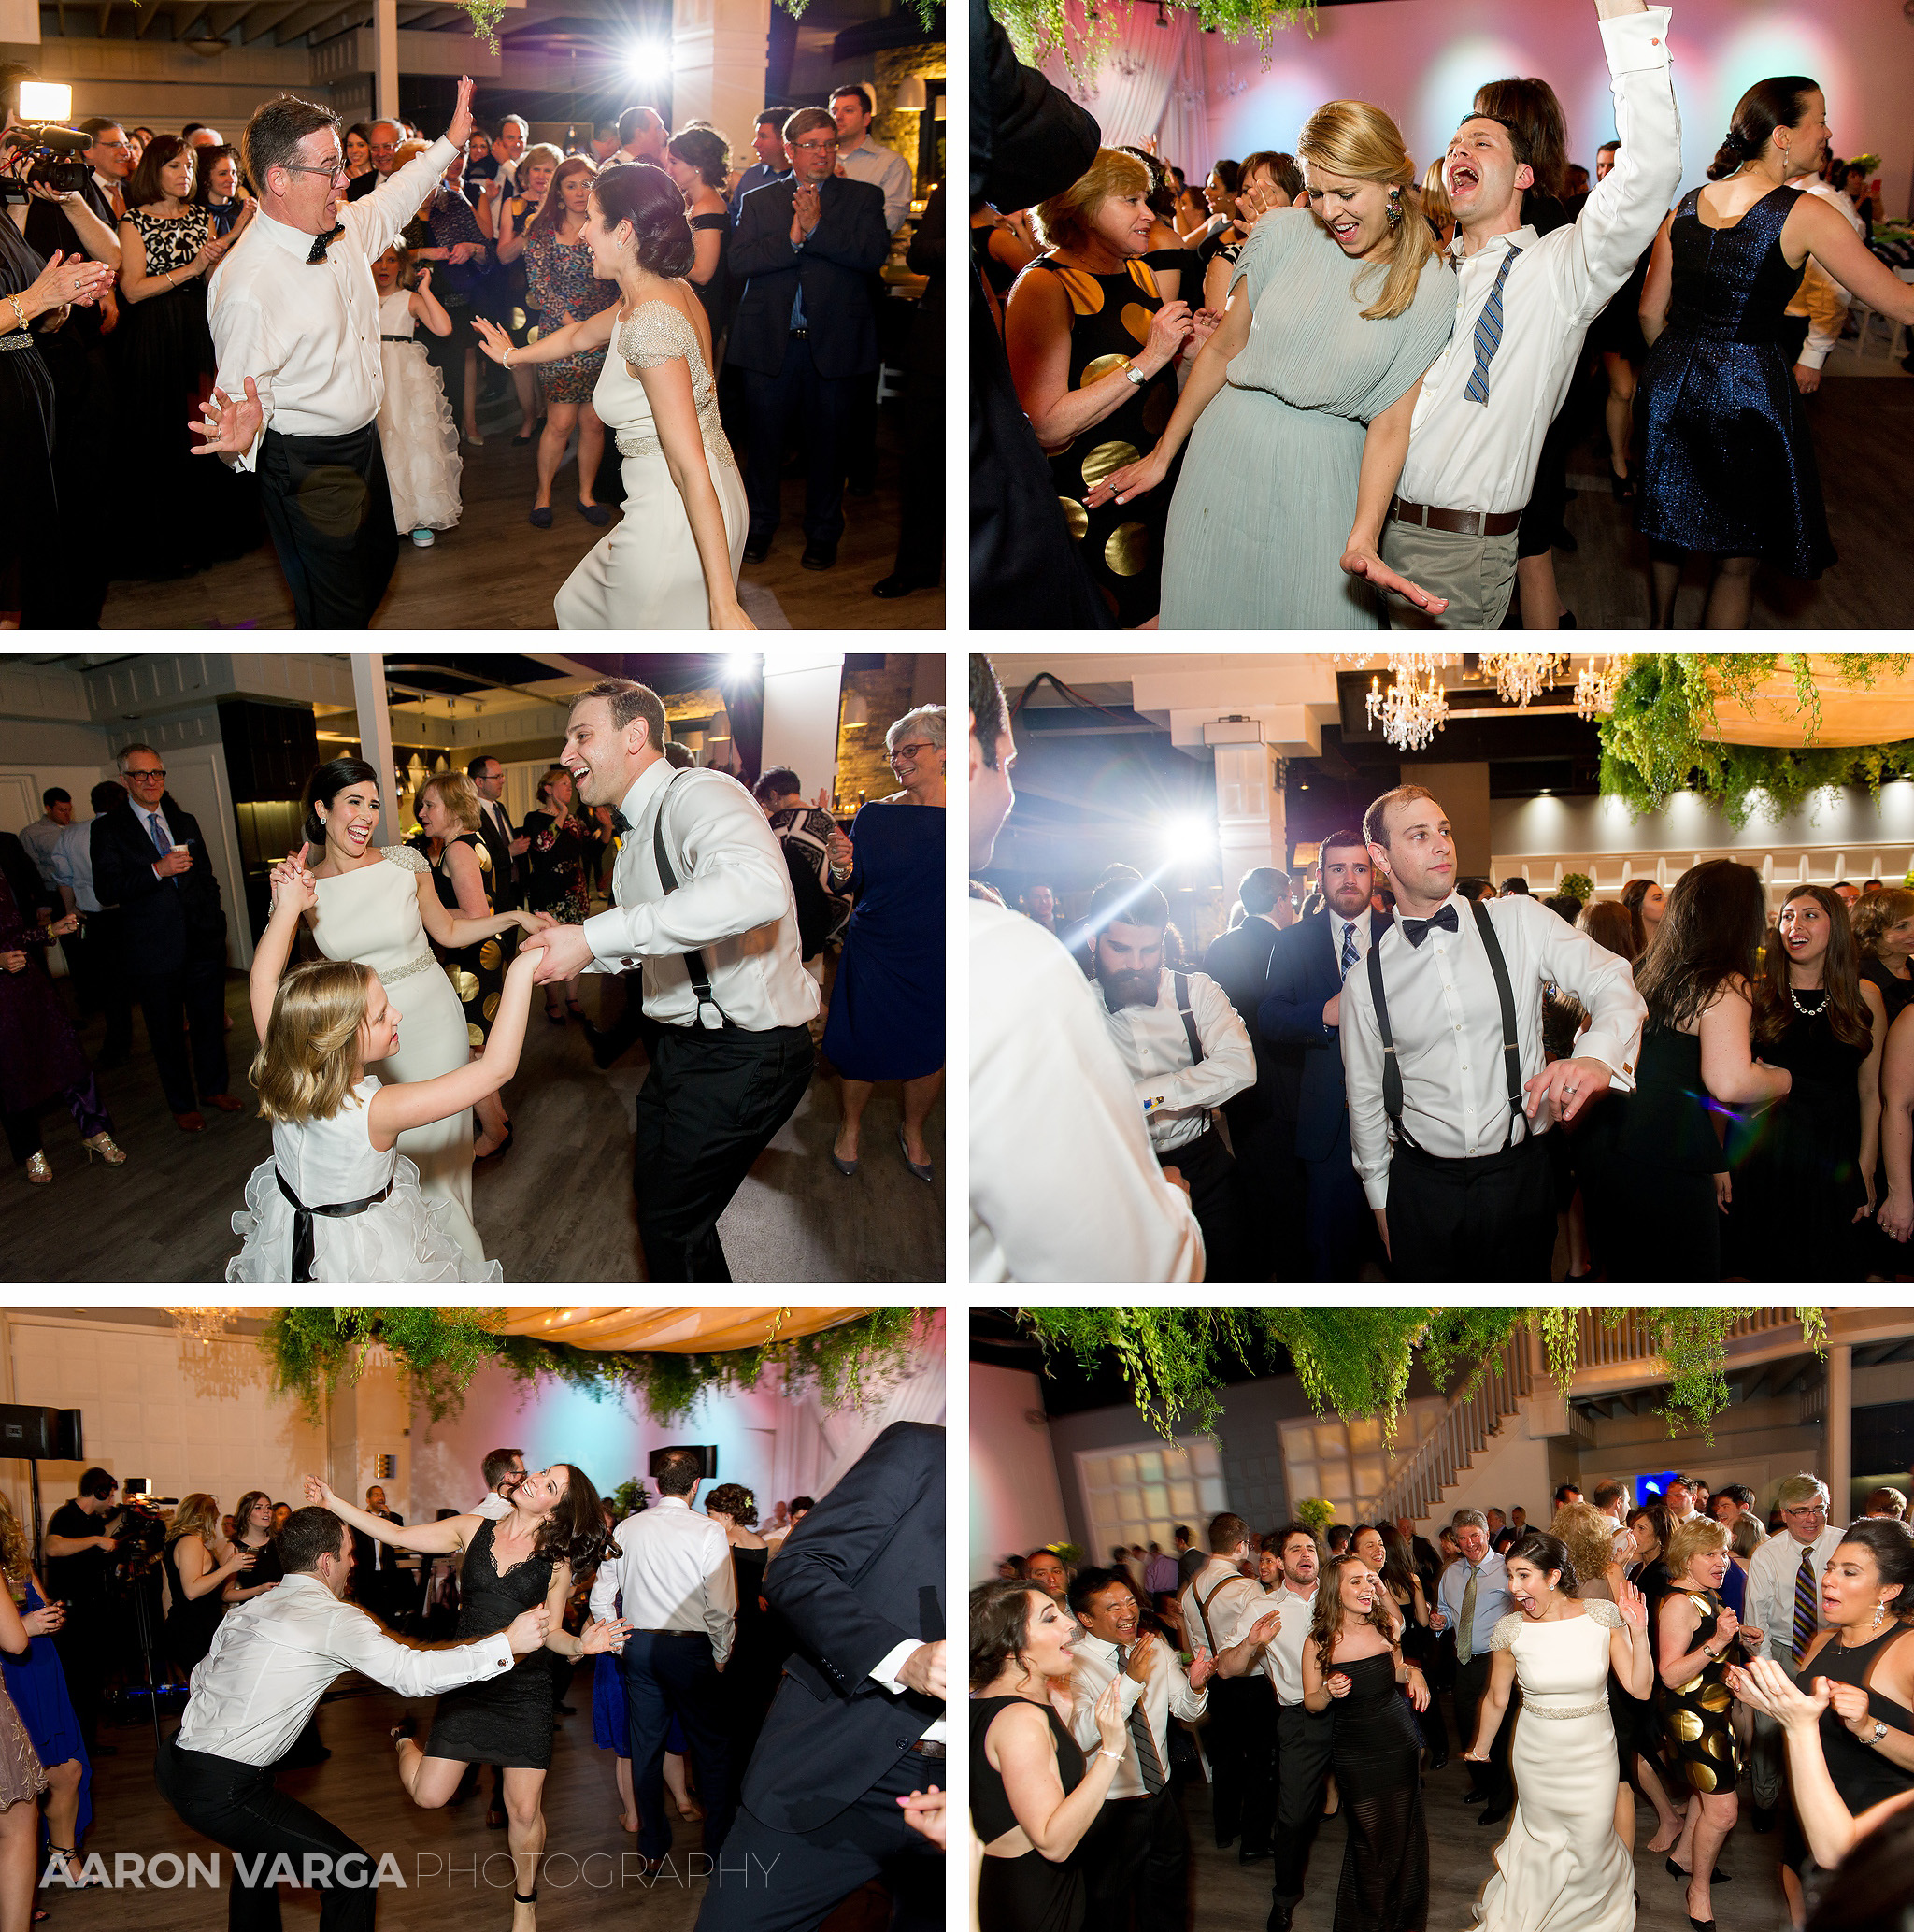 42 j verno studios reception dancing - Mimi + Mike | Hotel Monaco and J. Verno Studios Wedding Photos